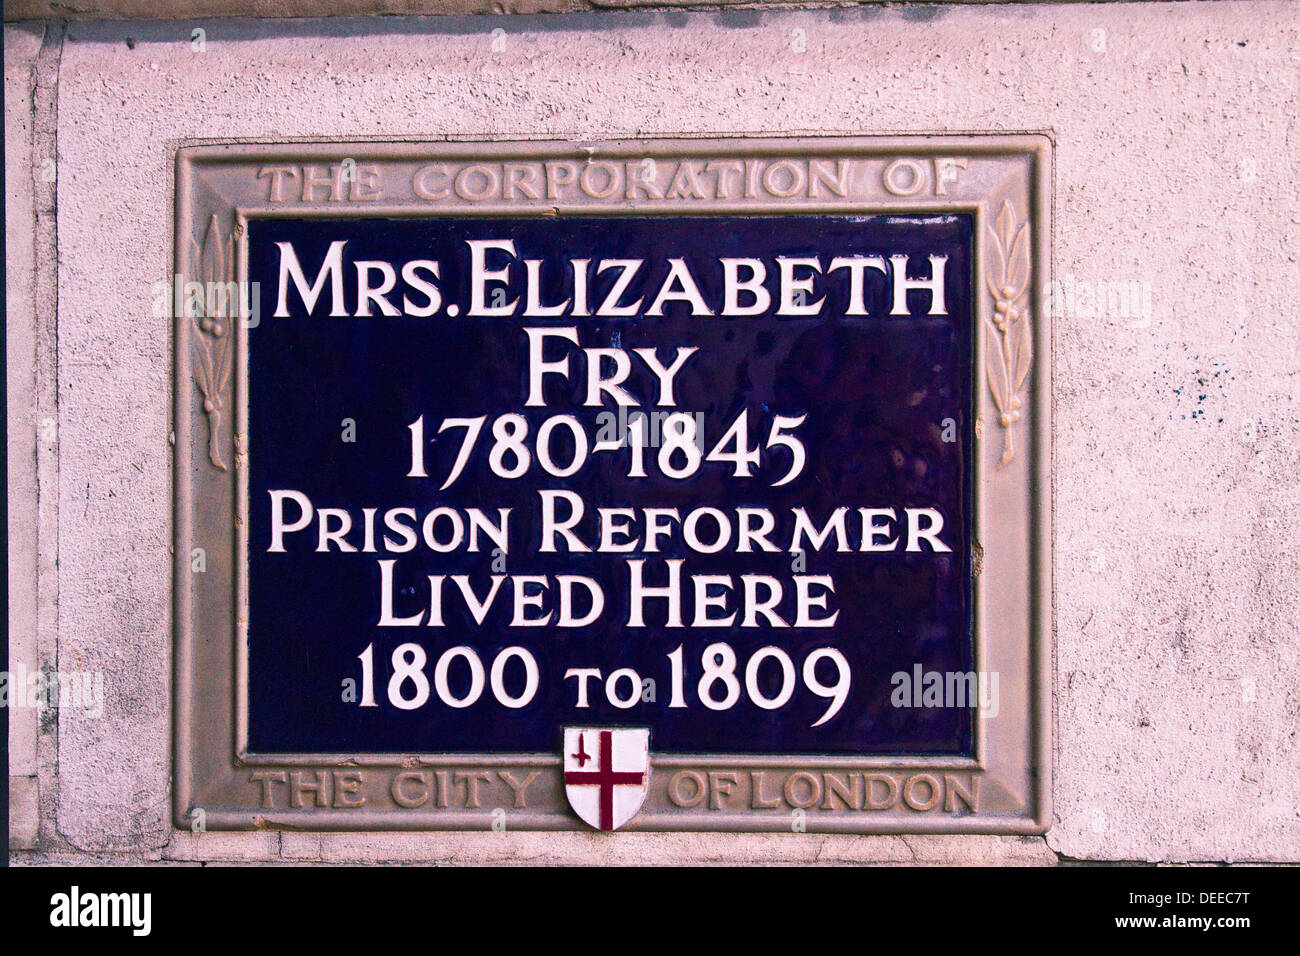 Mrs.Elizabeth Fry the prison reformer plaque at the site she lived in the City of London - Stock Image